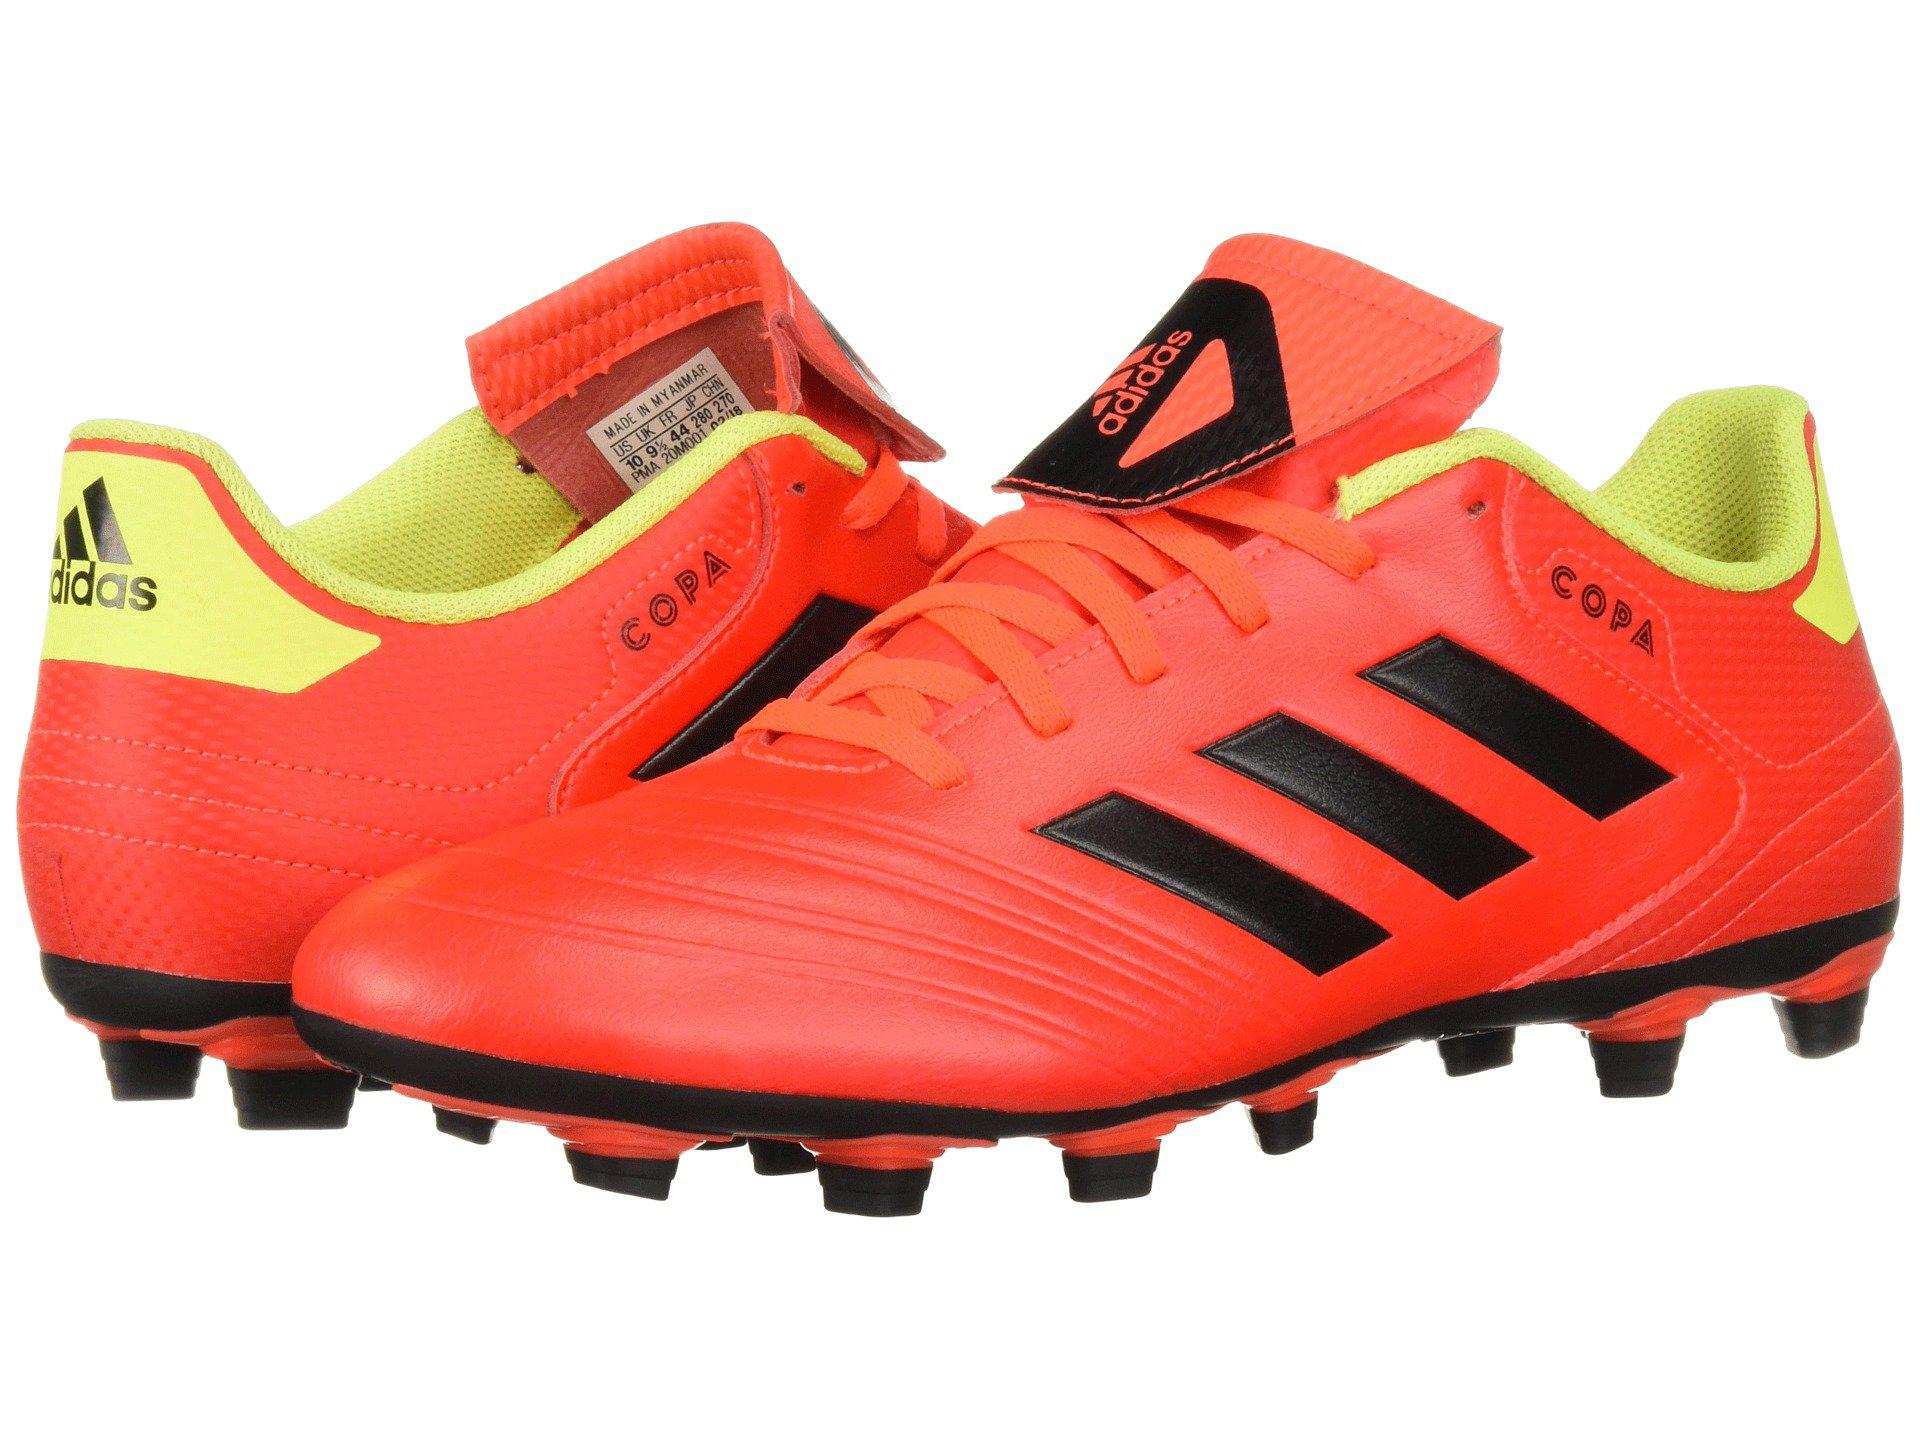 new style c7abf 7dabe Adidas - Red Copa 18.4 Fxg for Men - Lyst. View fullscreen